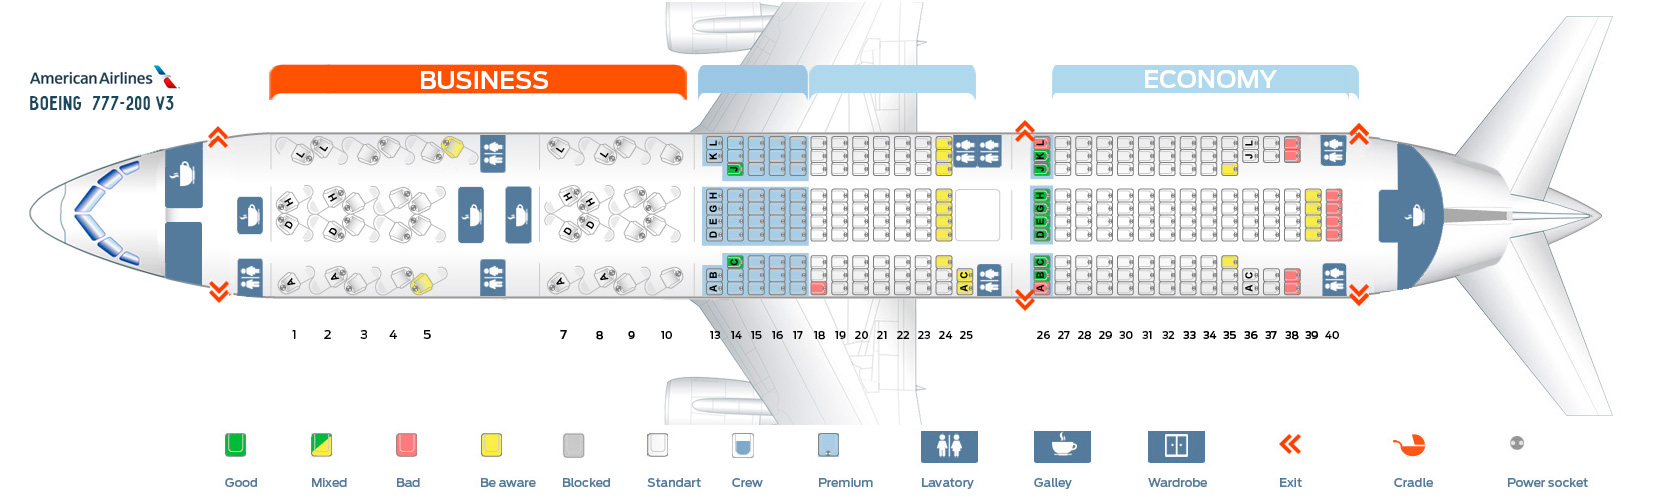 American Airlines Seat Map Boeing 777-200 V3